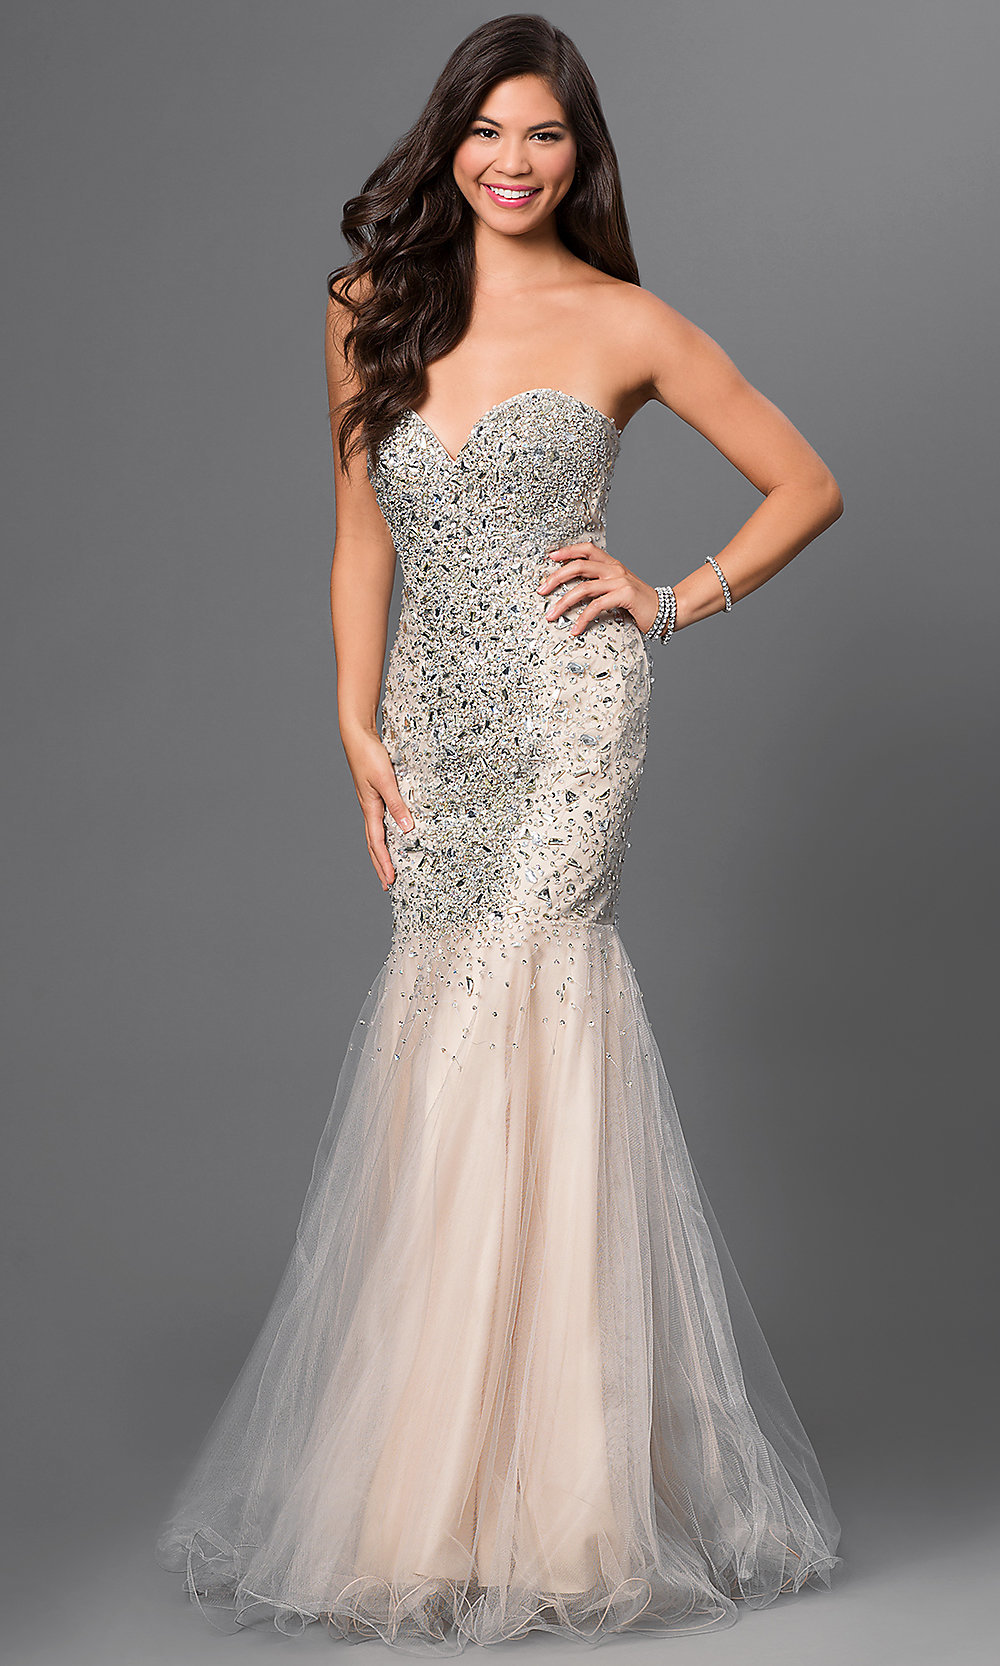 Mermaid Evening Gowns- Long Prom Dresses